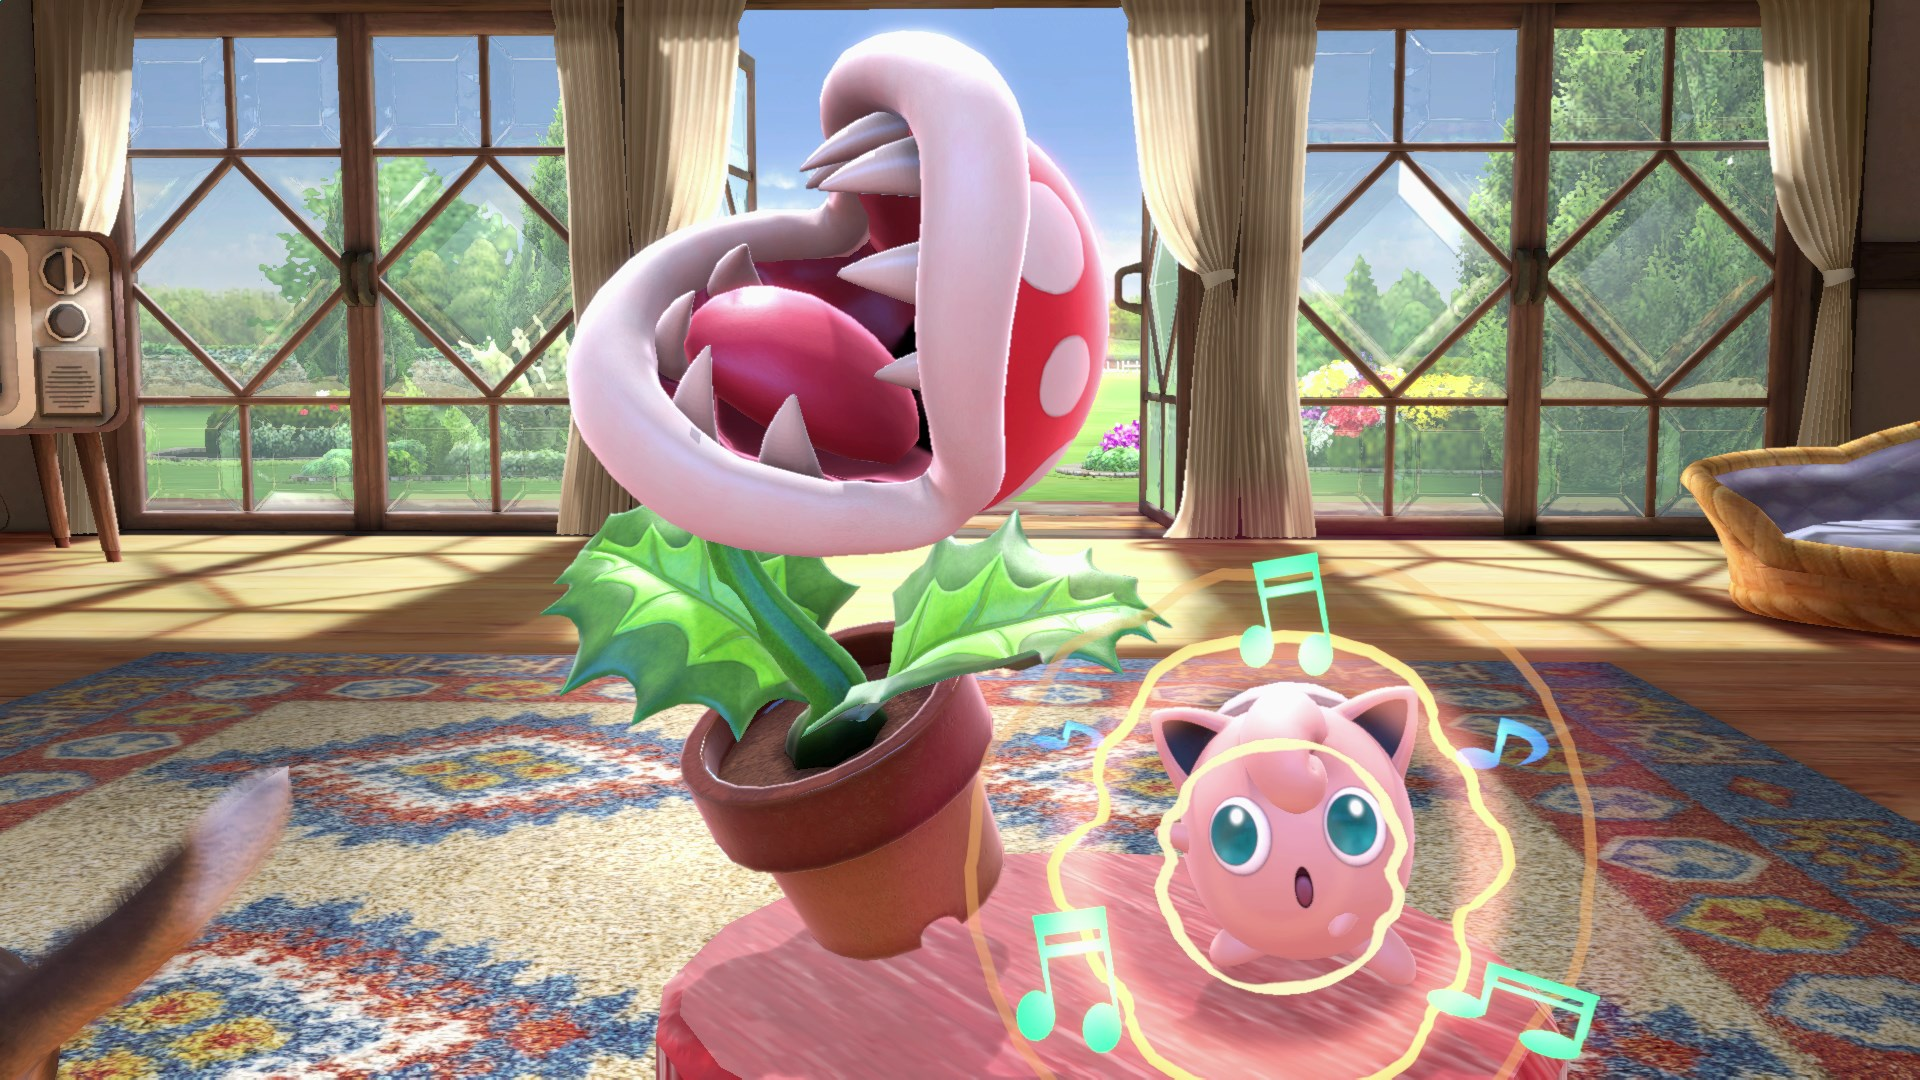 Super Smash Bros. Ultimate is smashing its way up the sales charts